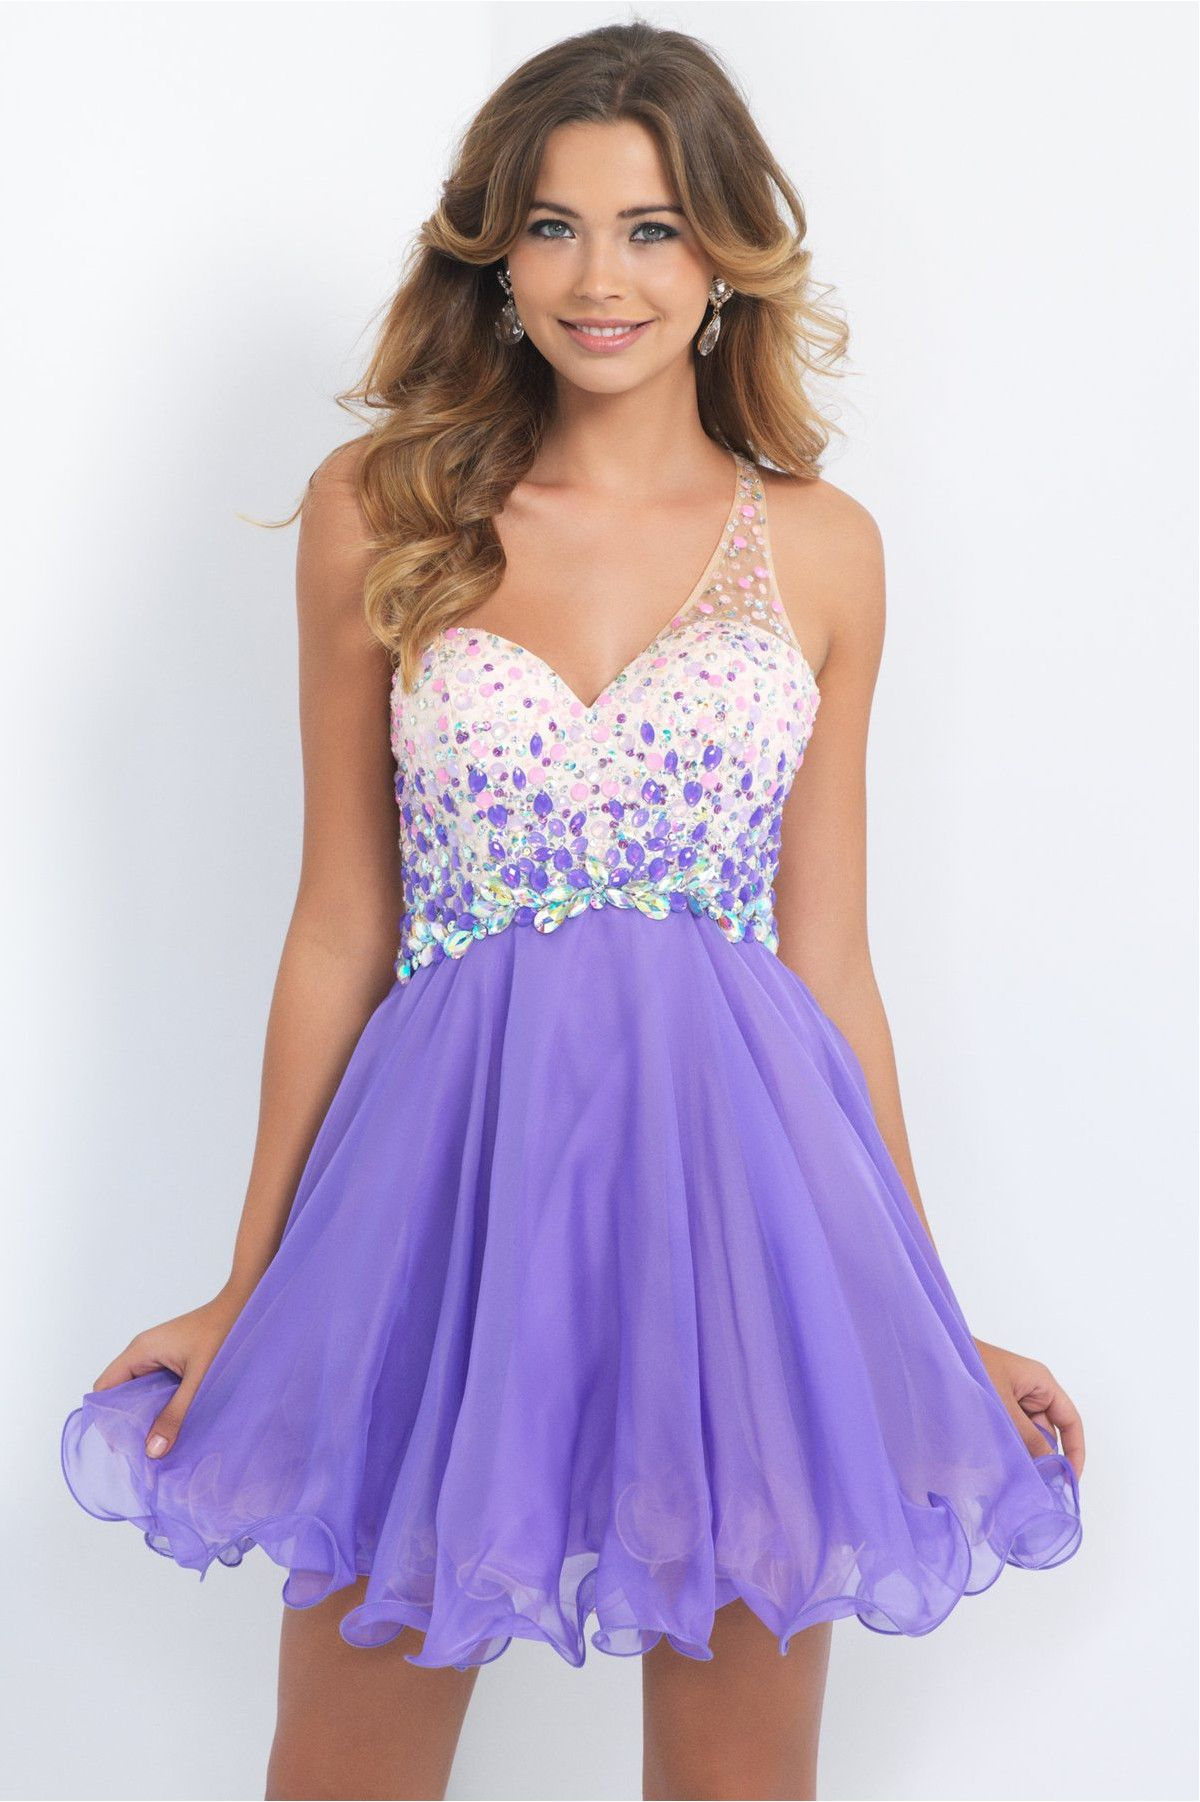 Violet Chiffon A Line Homecoming Dresses 2015 One Shoulder ...